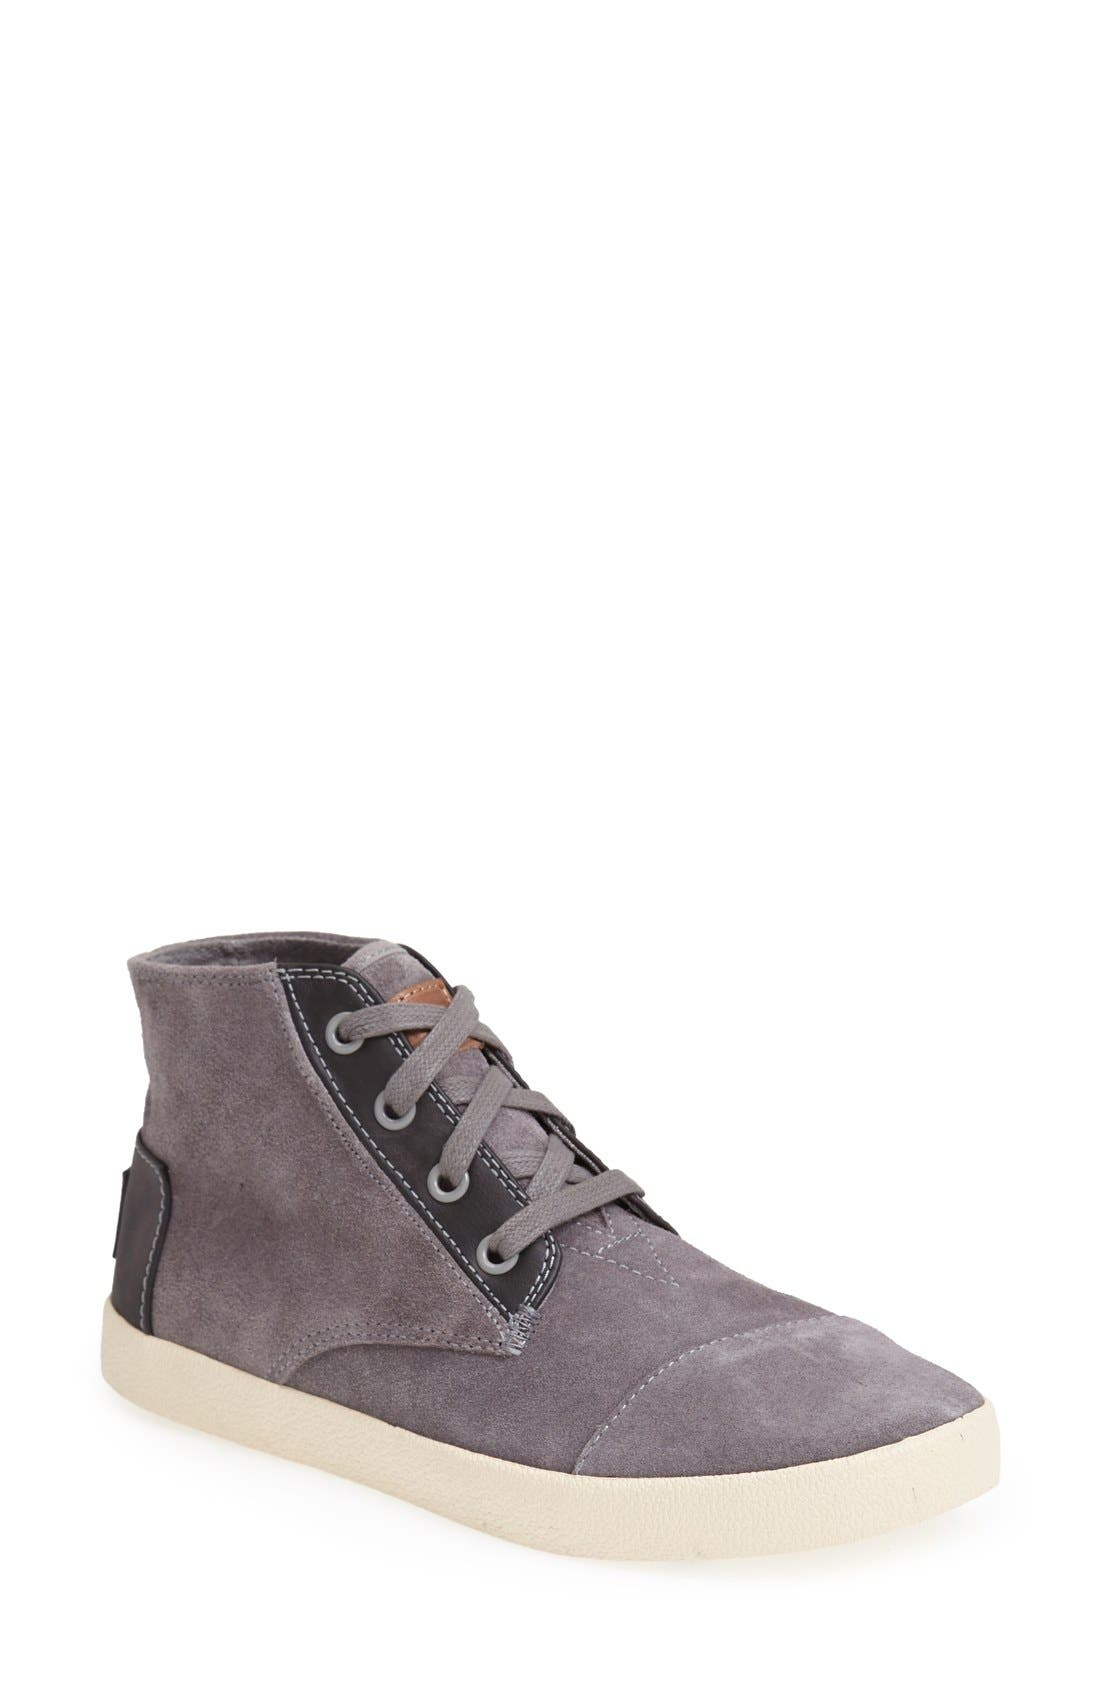 Main Image - TOMS 'Paseo - High' Sneaker (Women)